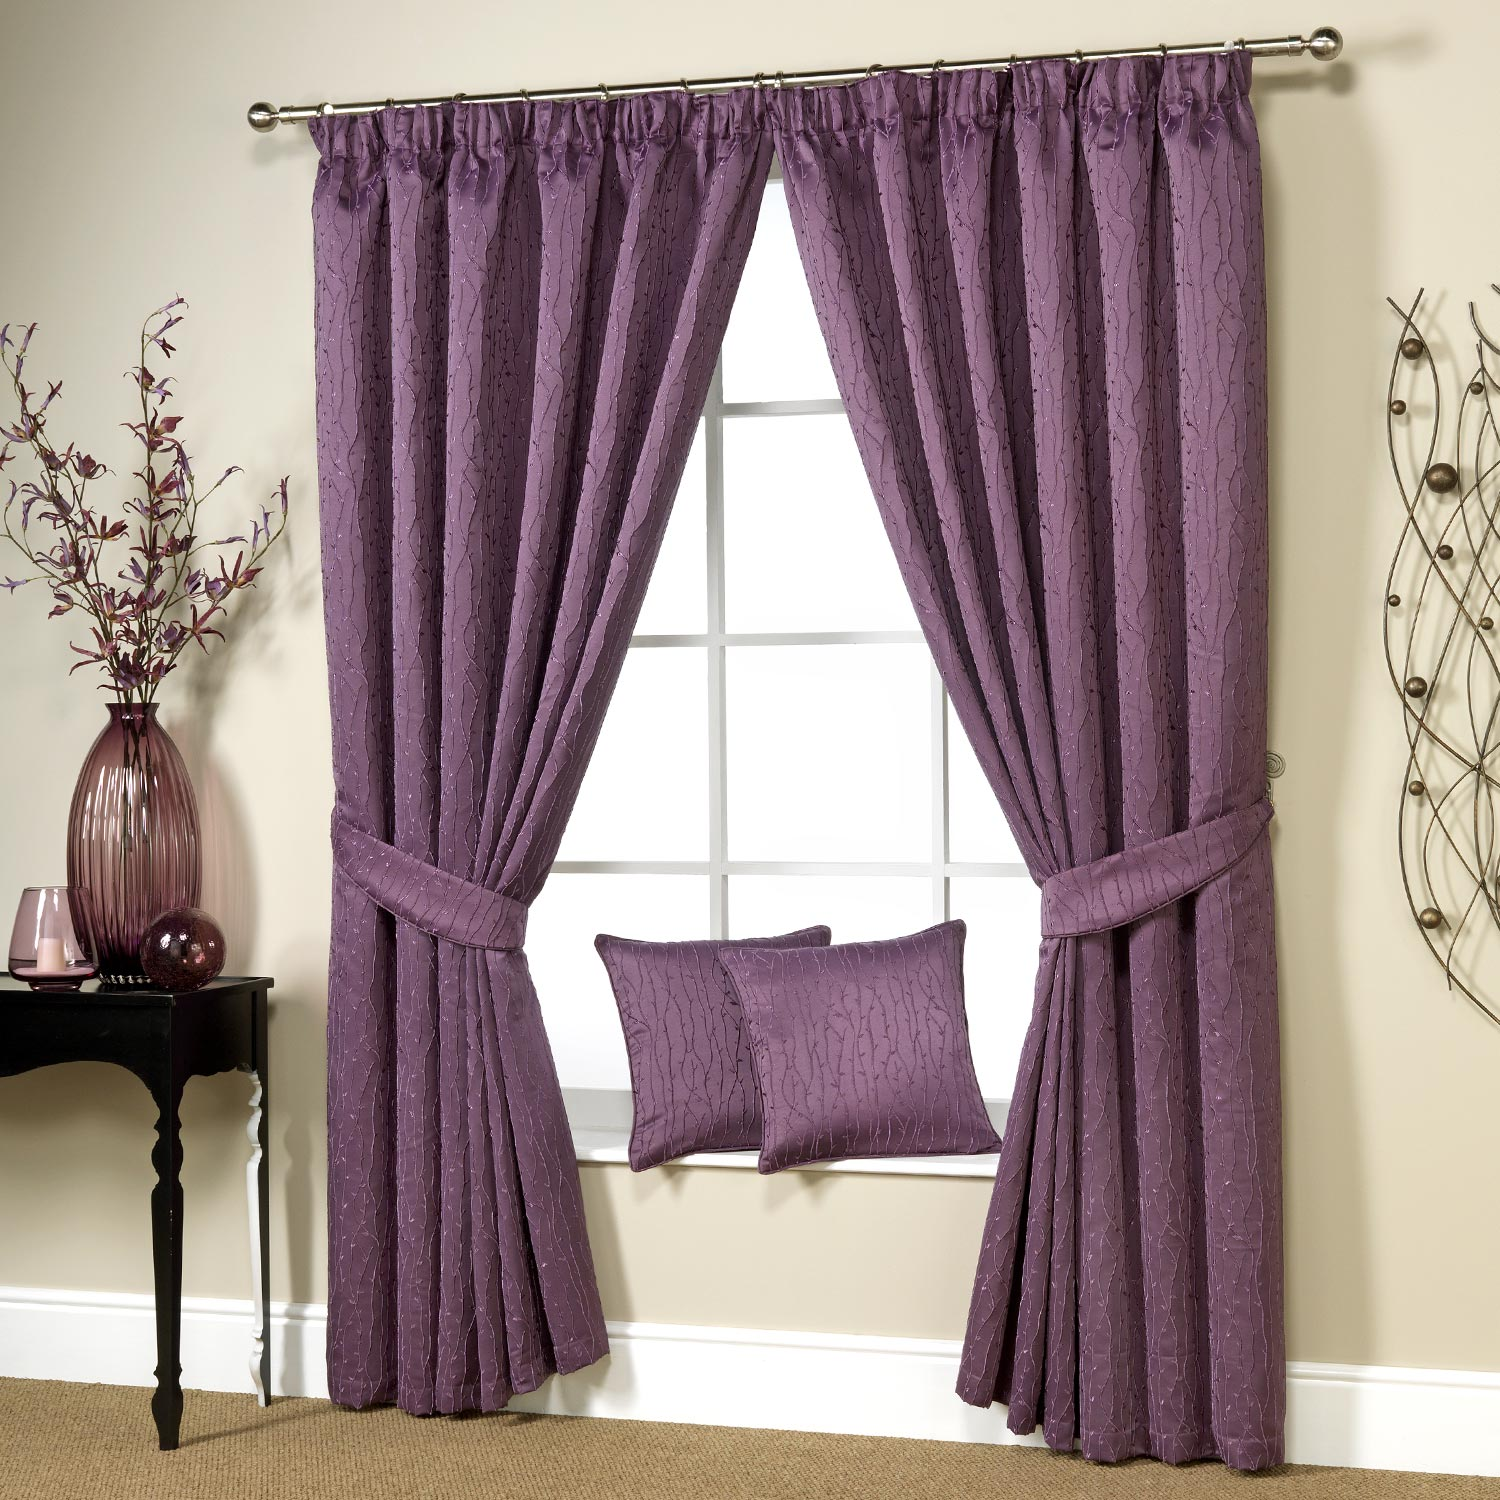 Fancy Kitchen Curtains Living Room Sheer Shower With Valance Tie Backs For